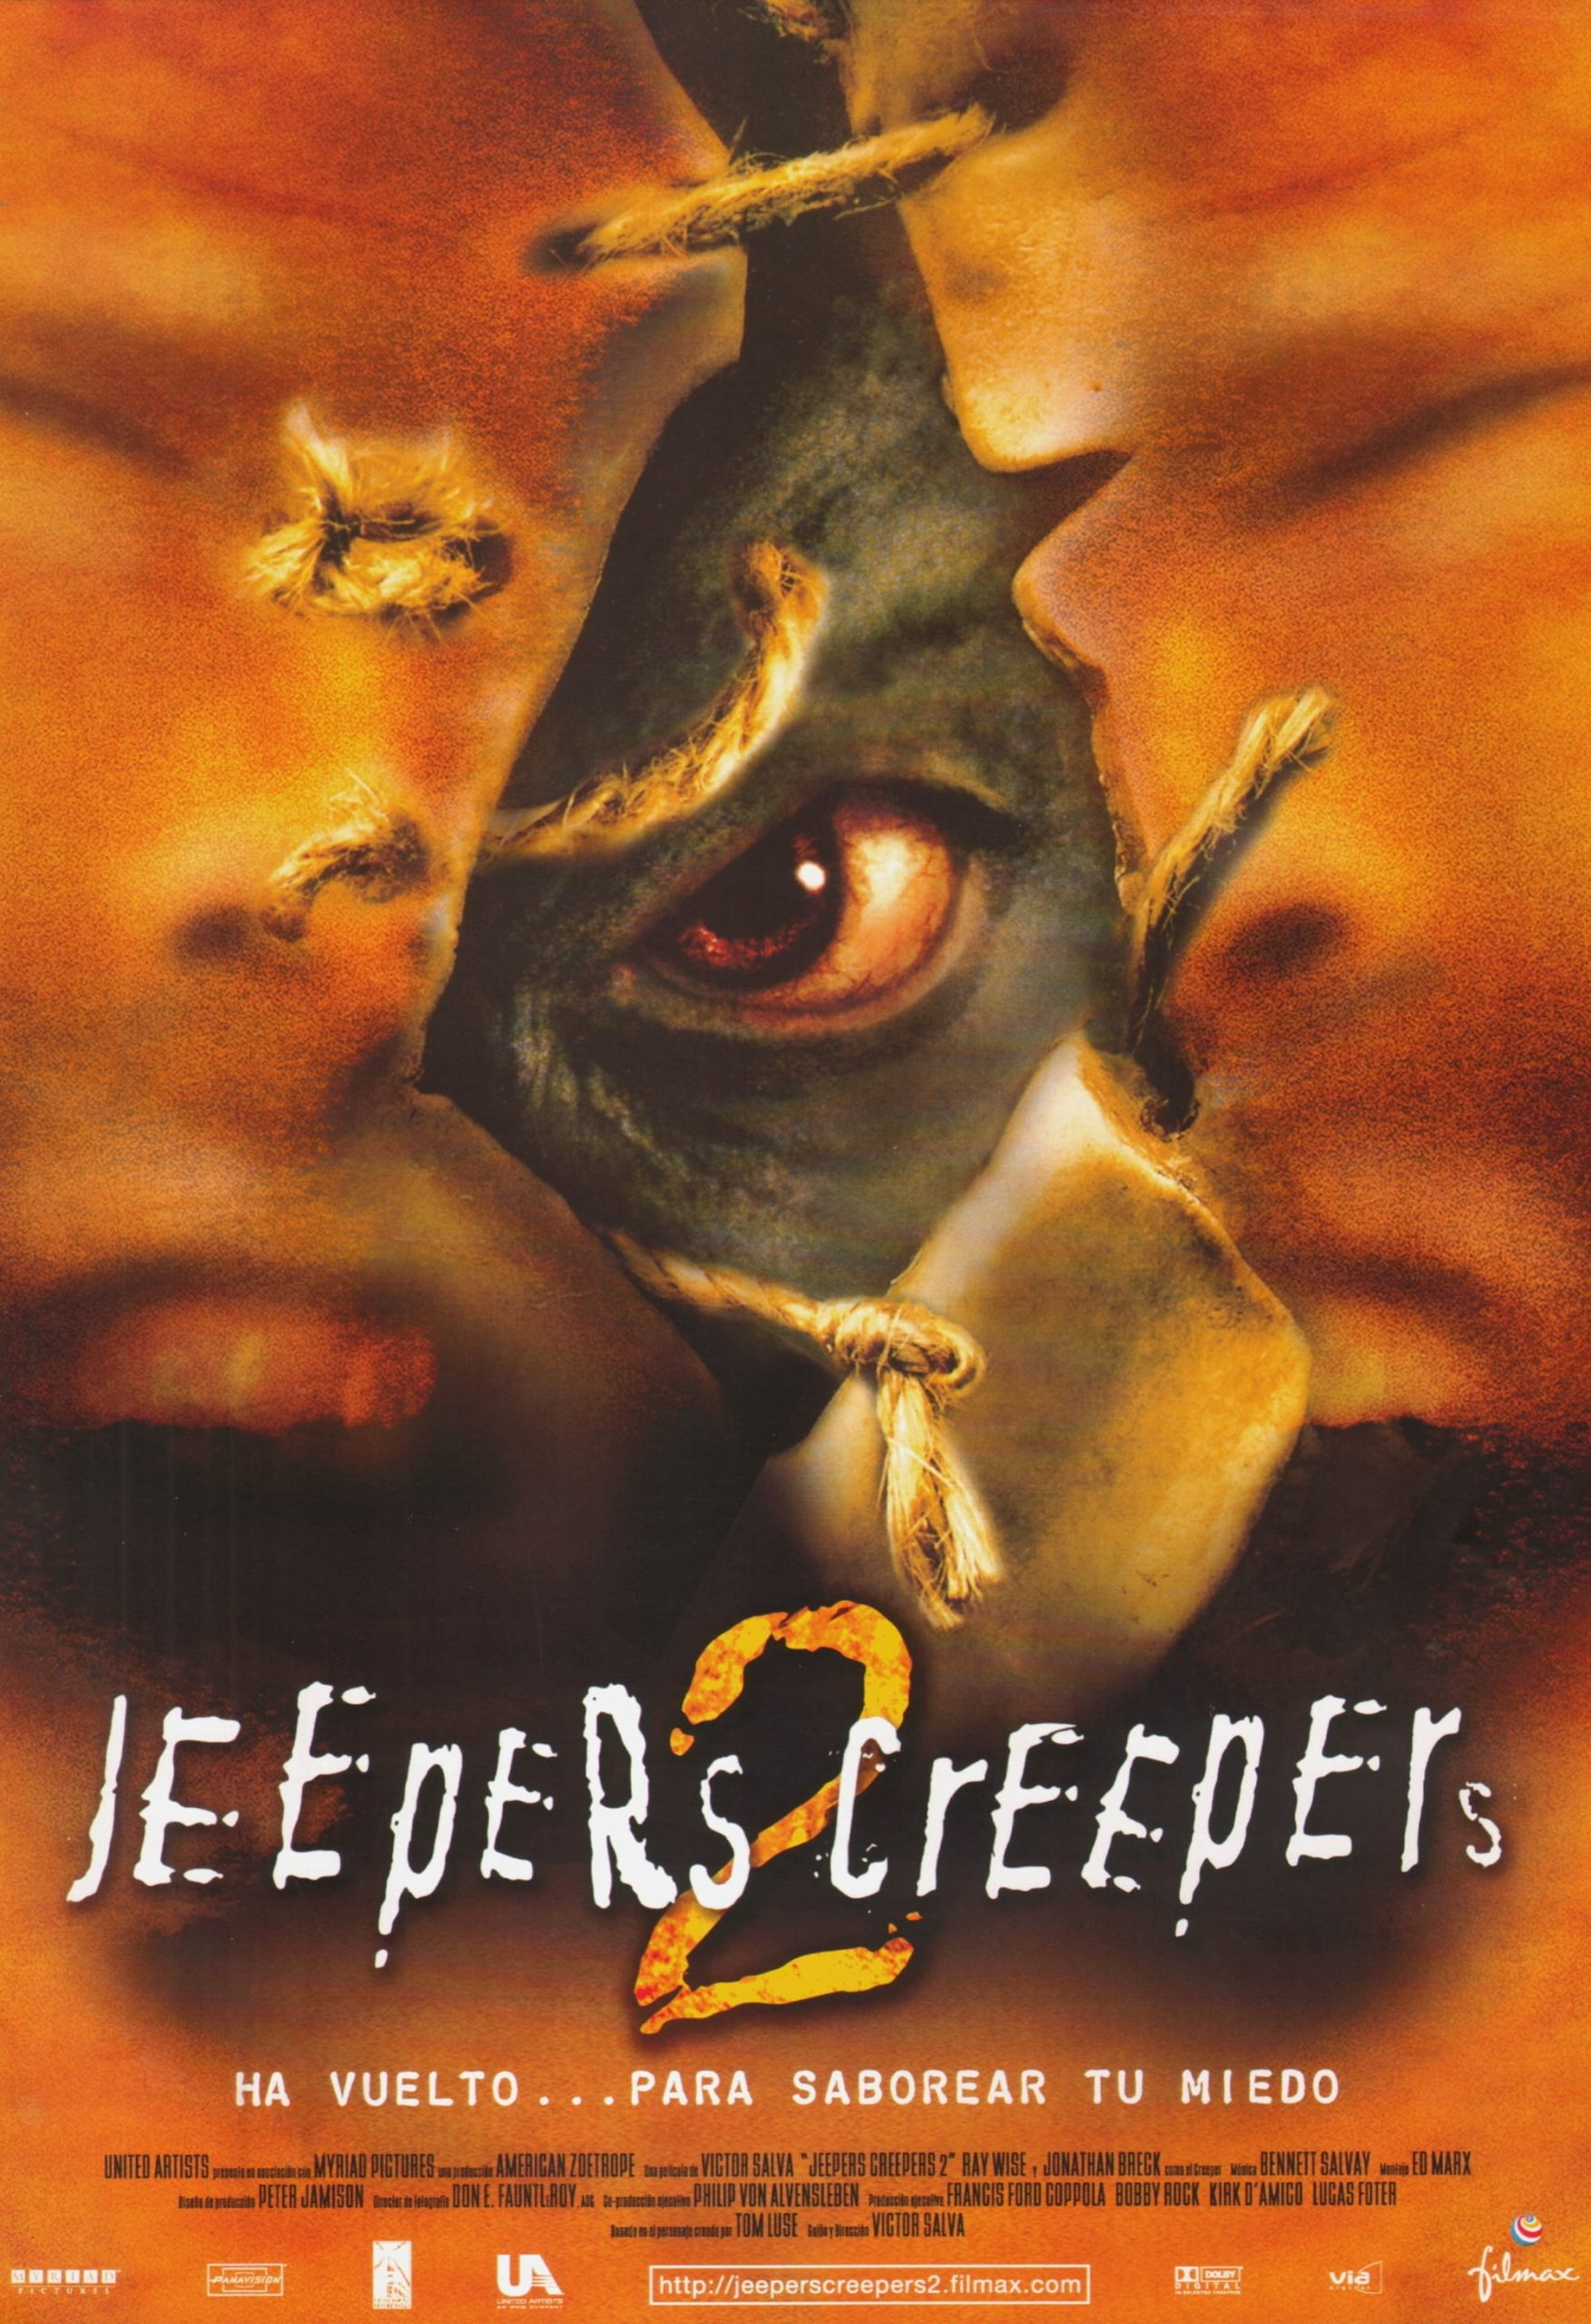 thumb Jeepers Creepers 2